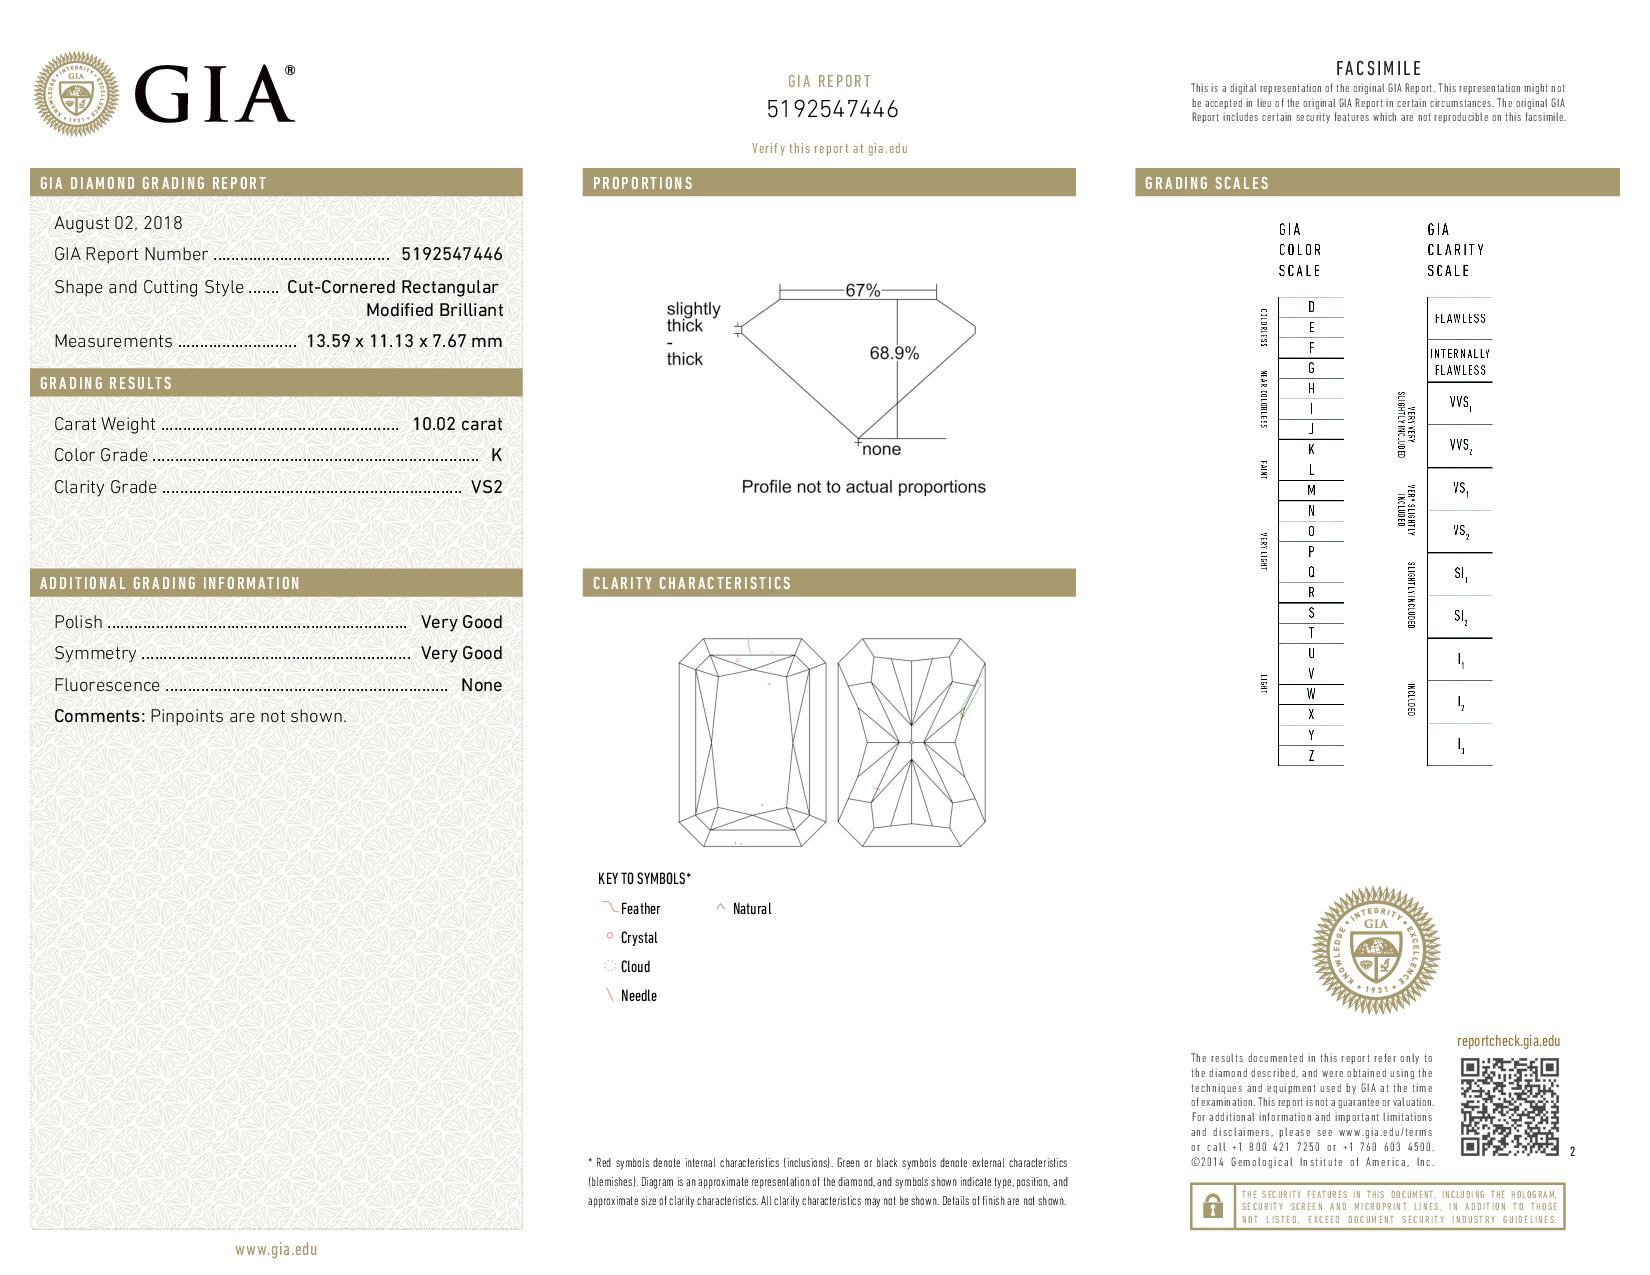 This is a 10.02 carat radiant shape, K color, VS2 clarity natural diamond accompanied by a GIA grading report.